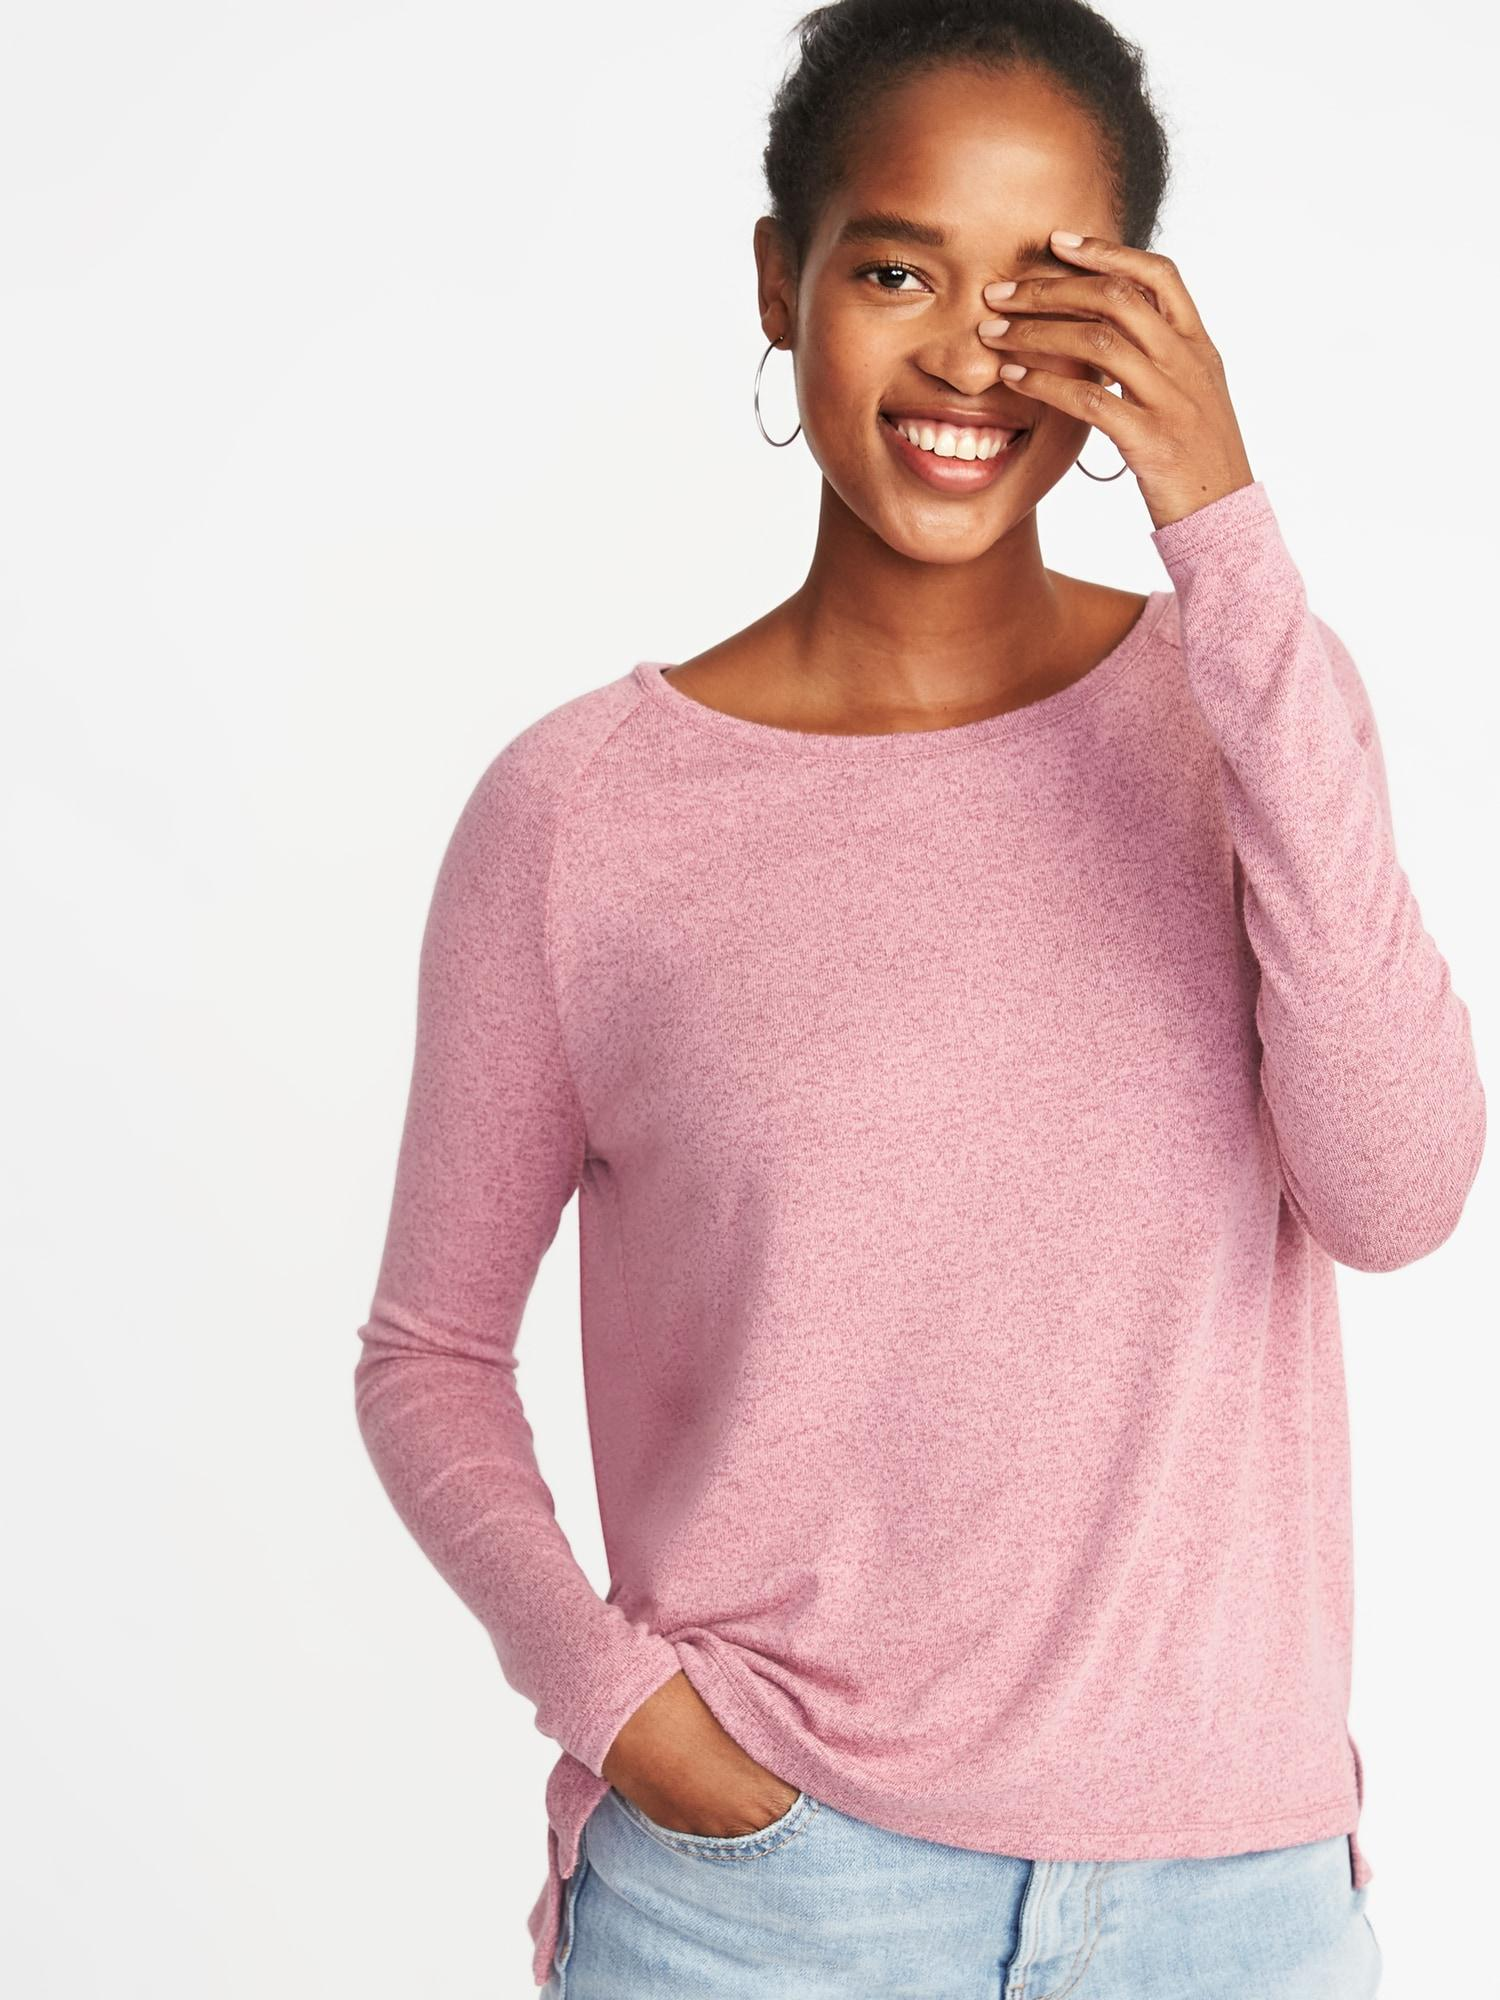 adf49f763 Old Navy Loose Luxe Soft-spun Tee in Pink - Lyst